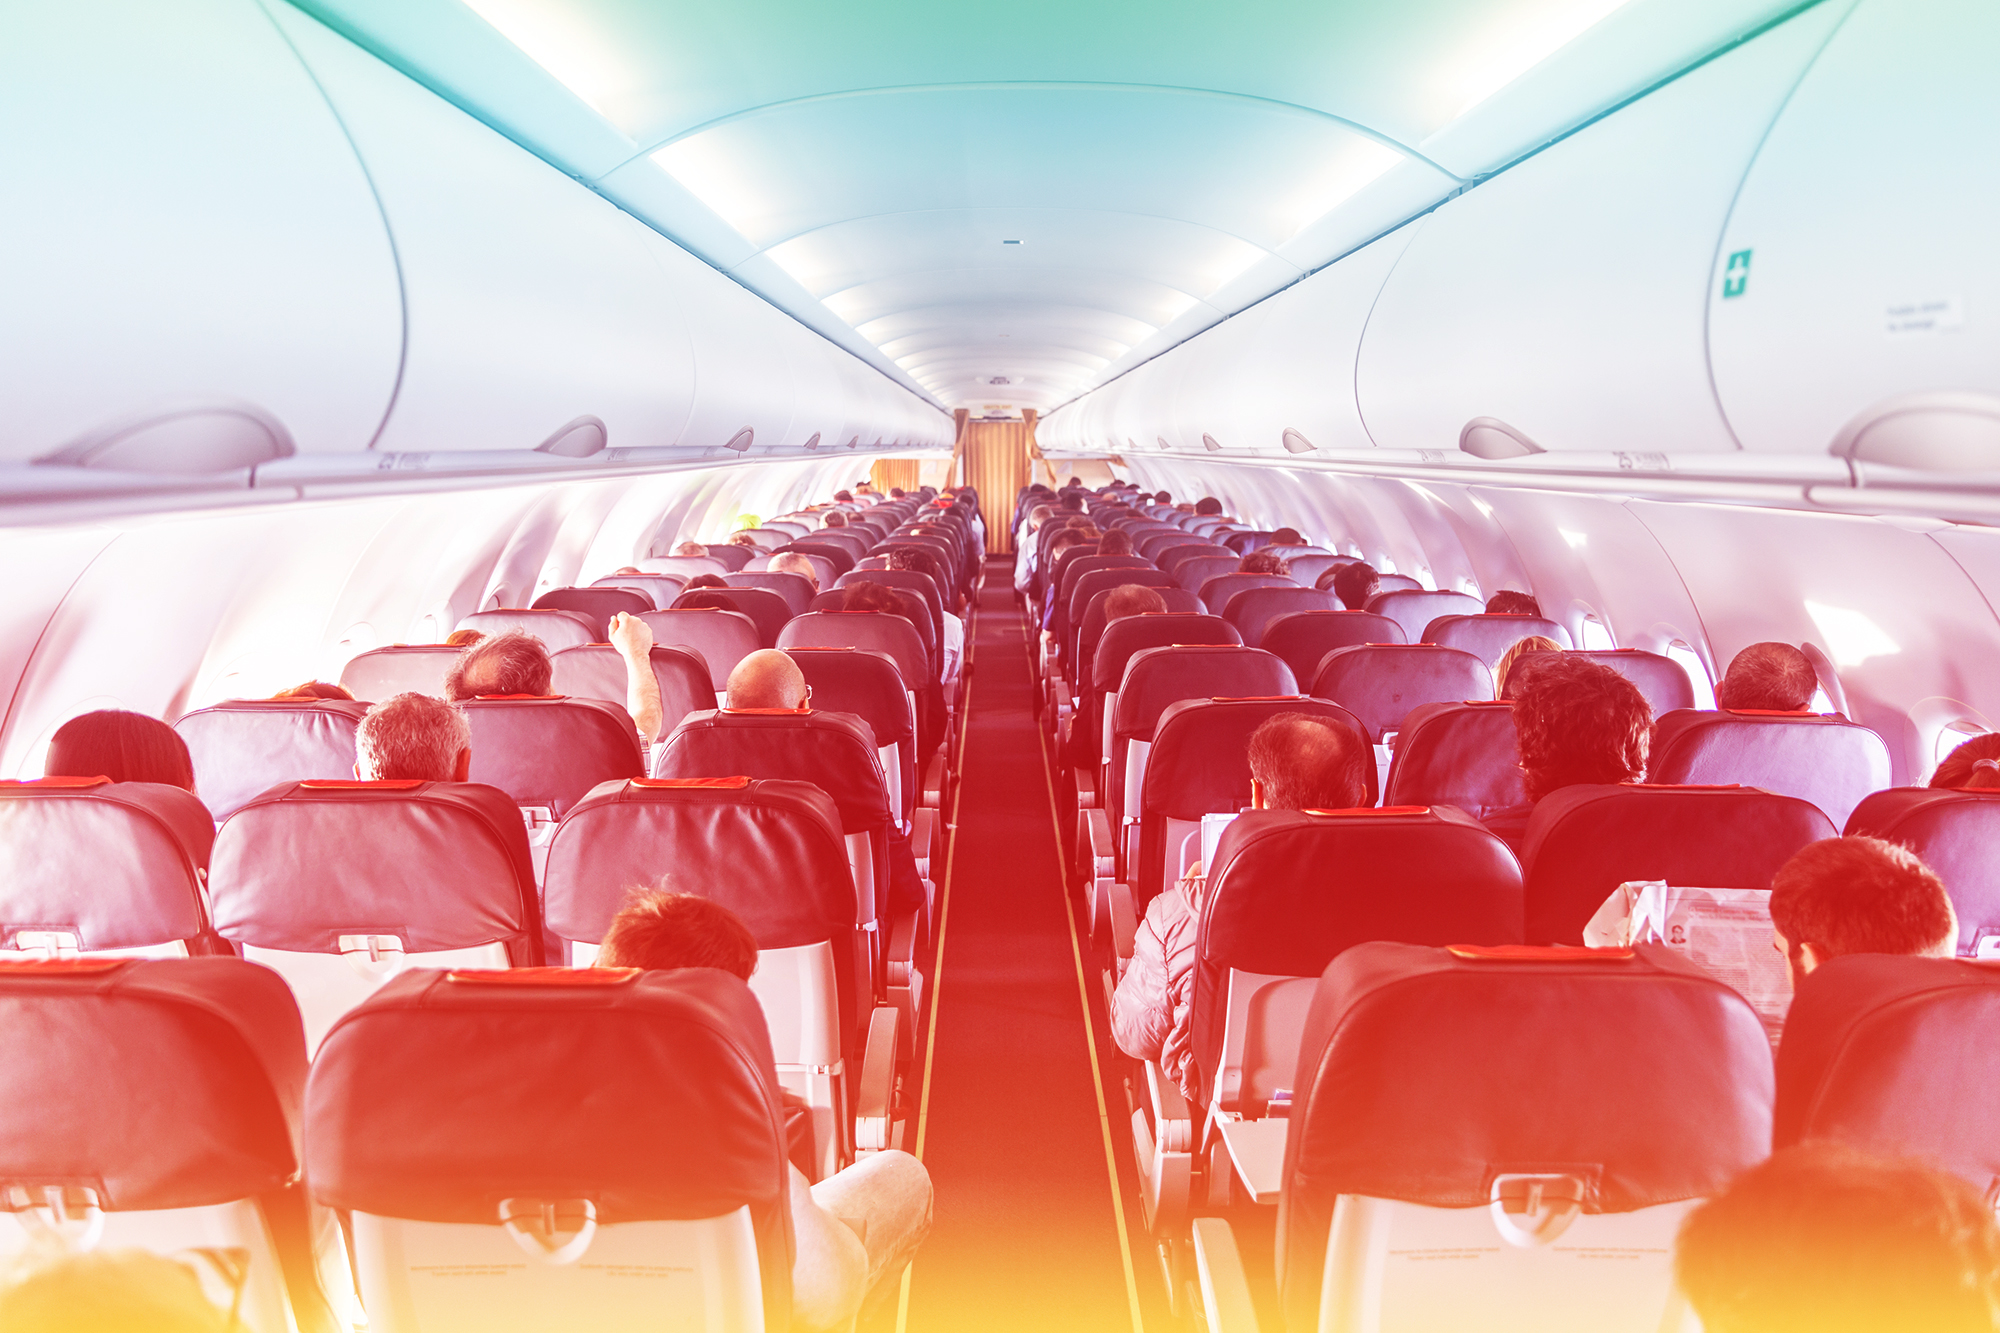 Interior of commercial airplane with passengers on their seats during flight. , southwest-flight-health-care-workers-covid-19 , southwest-flight , health-care-workers , covid-19